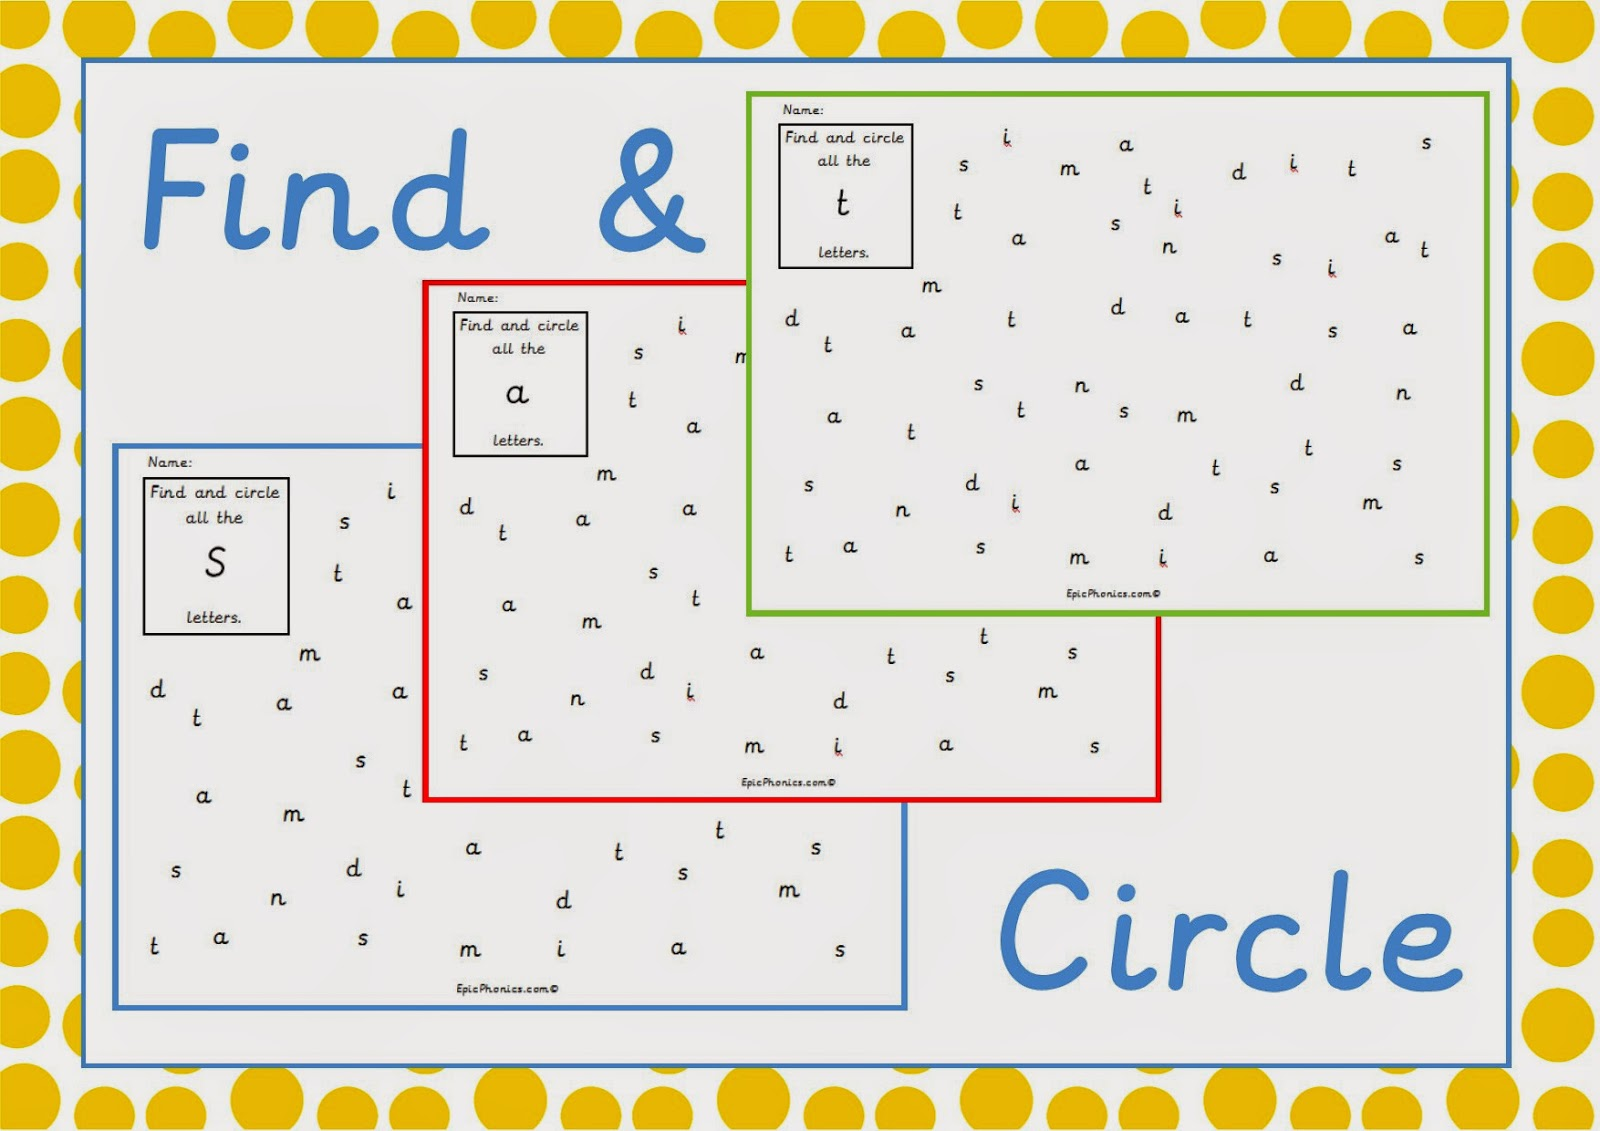 Simply Kids Learning: Phonics Phase 2 Printable Activity Worksheet